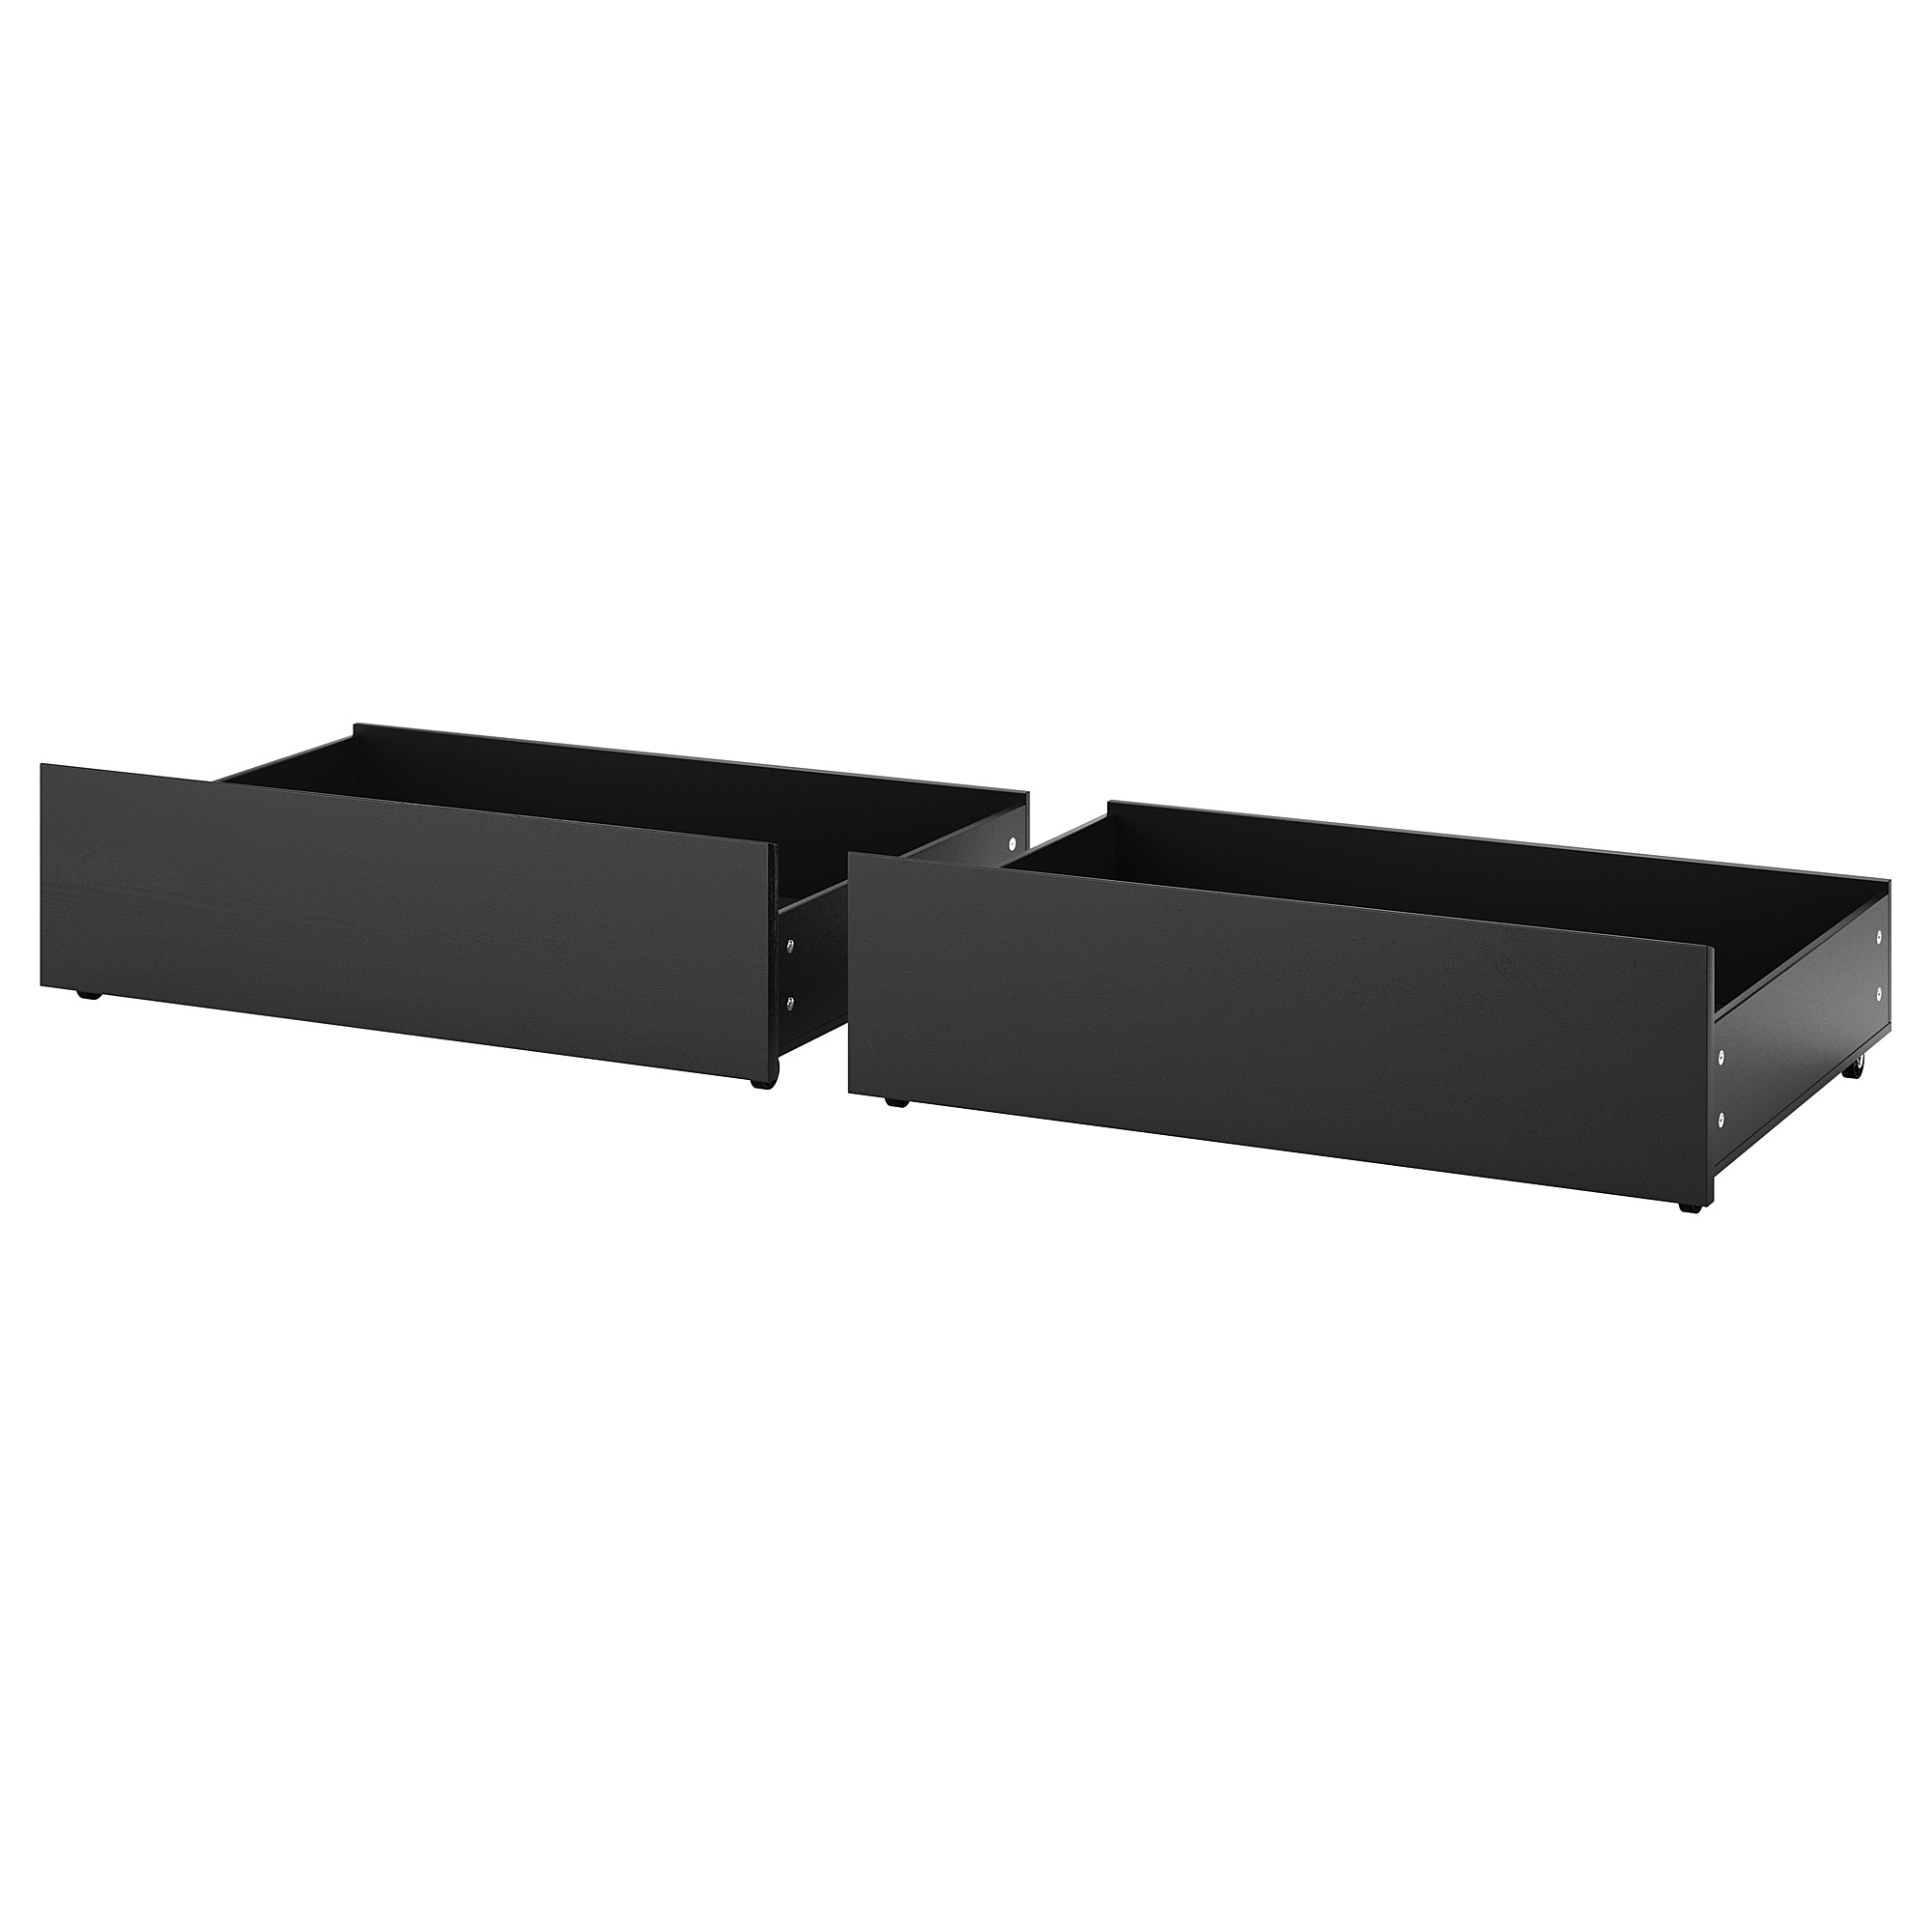 Underbed Storage Box For High Bed Malm Black Brown